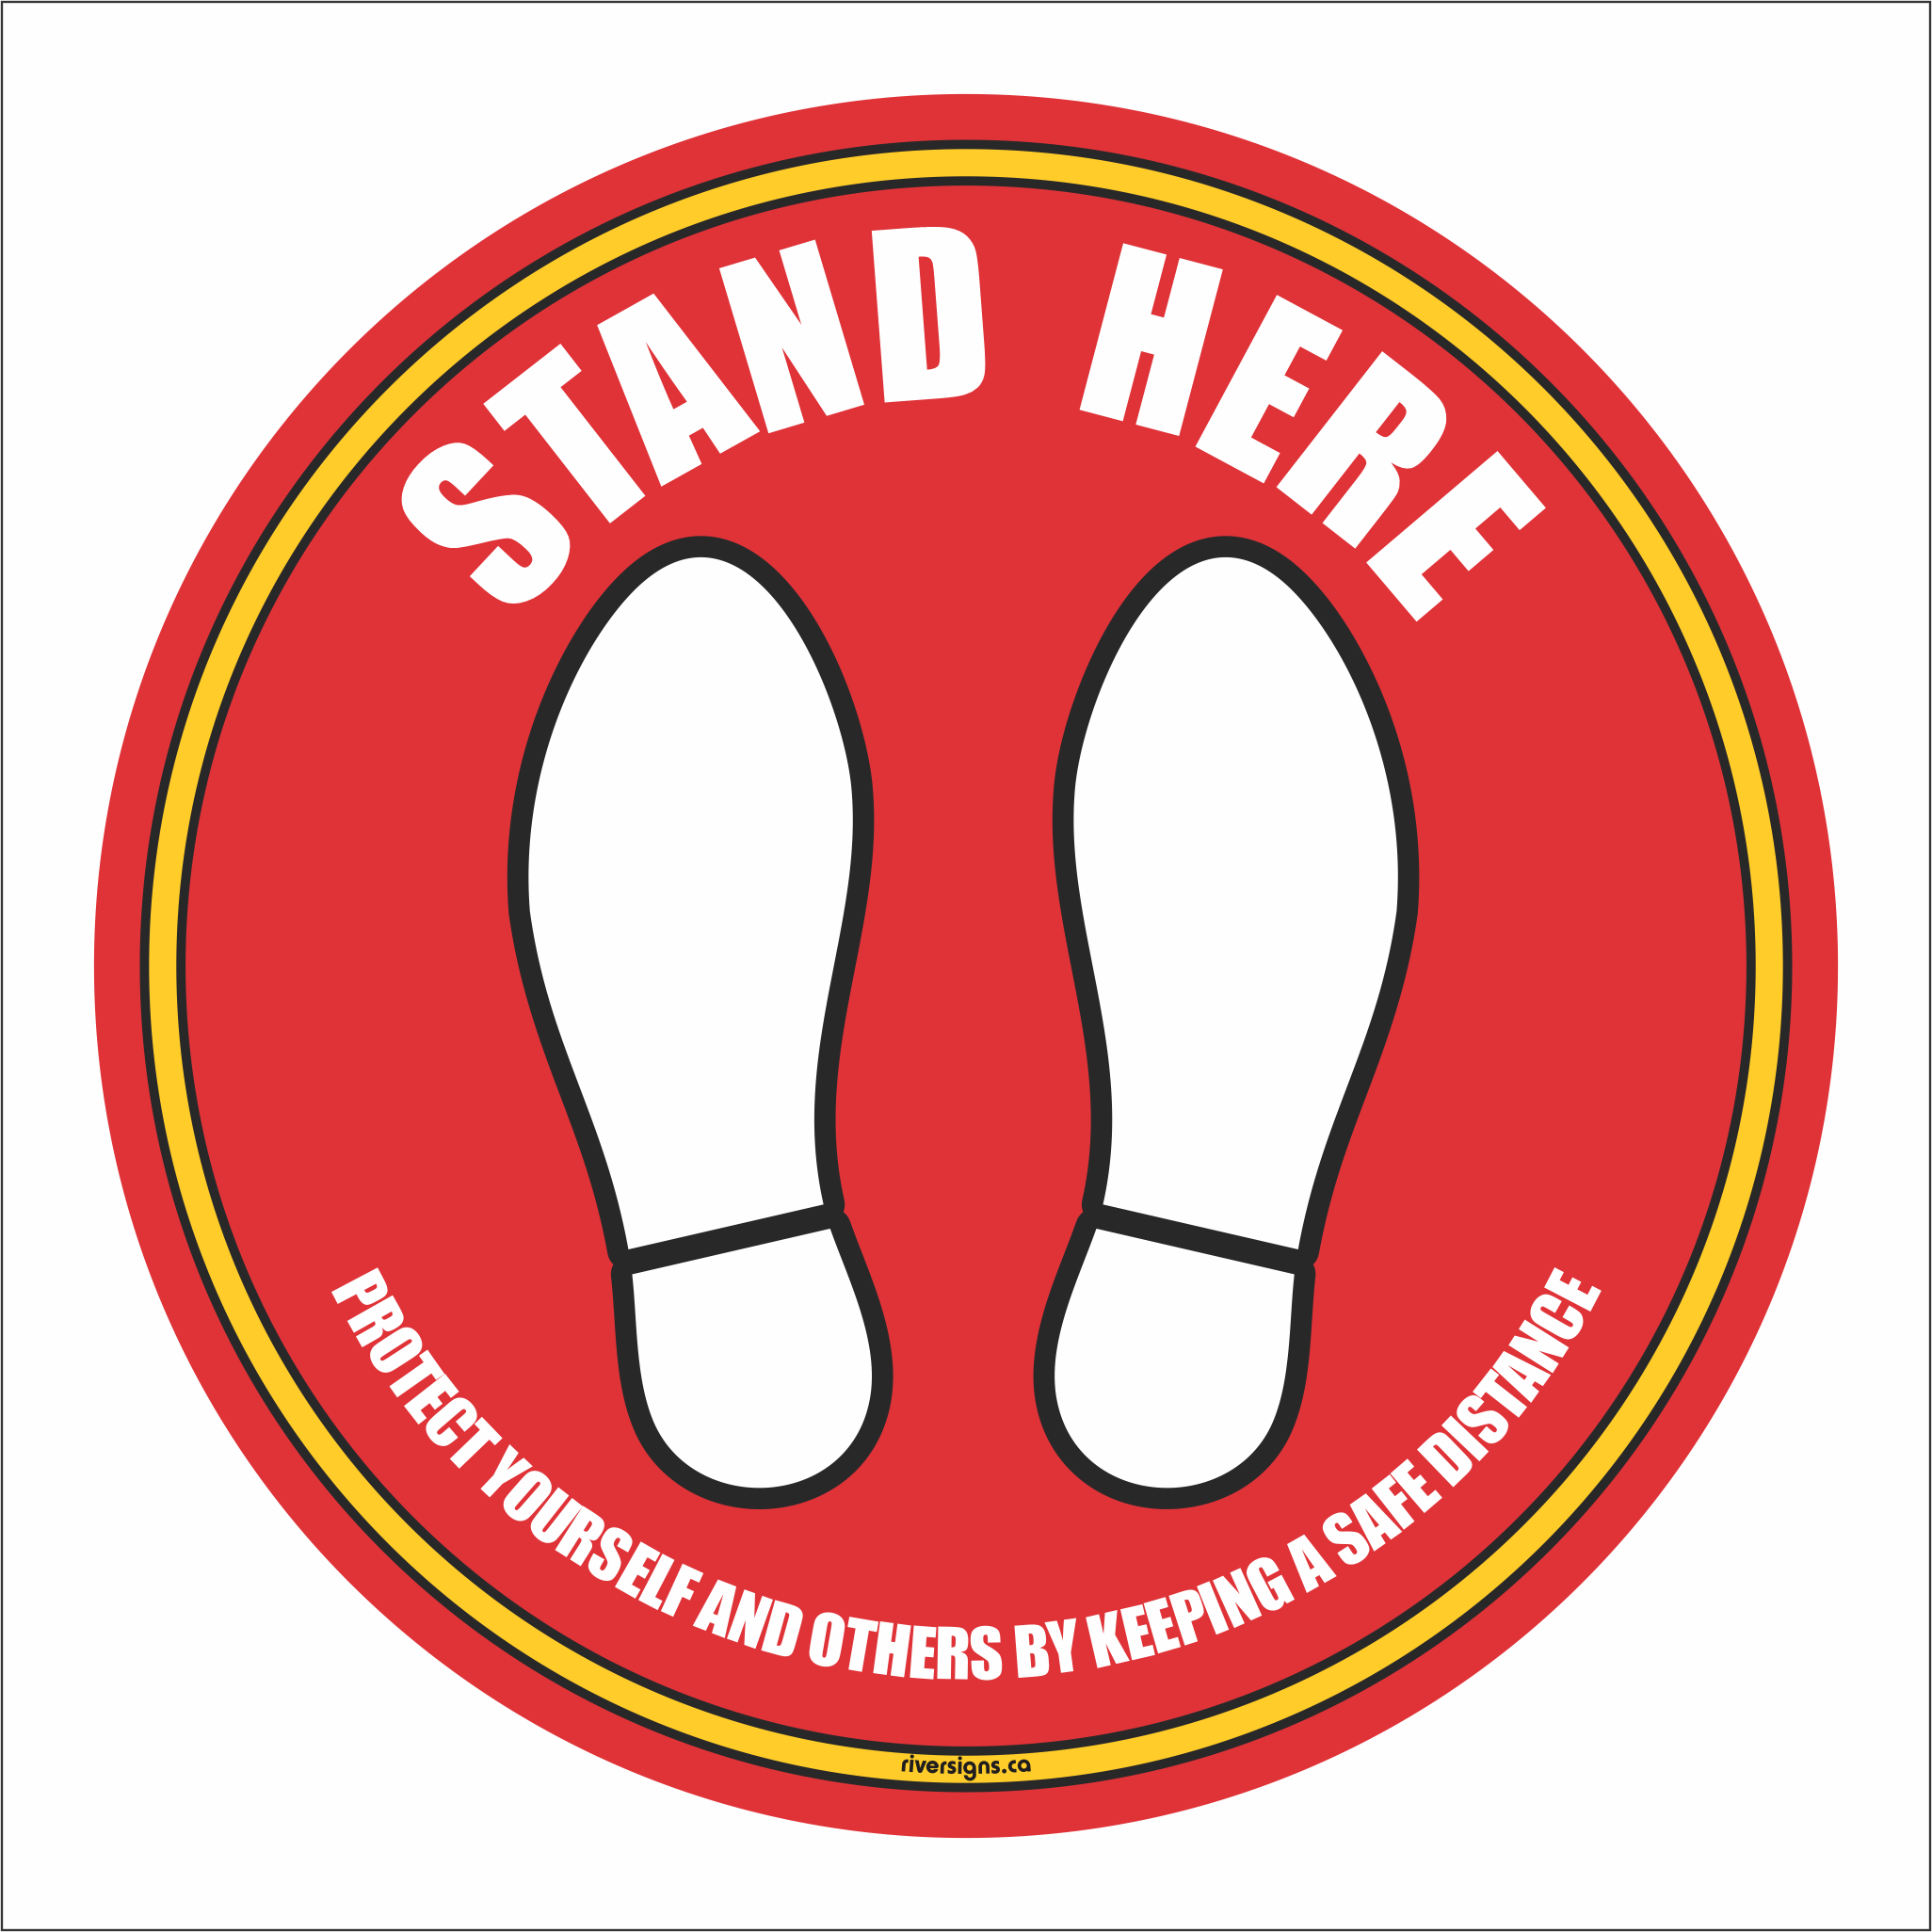 "Stand Here Decal - 16"" diameter"